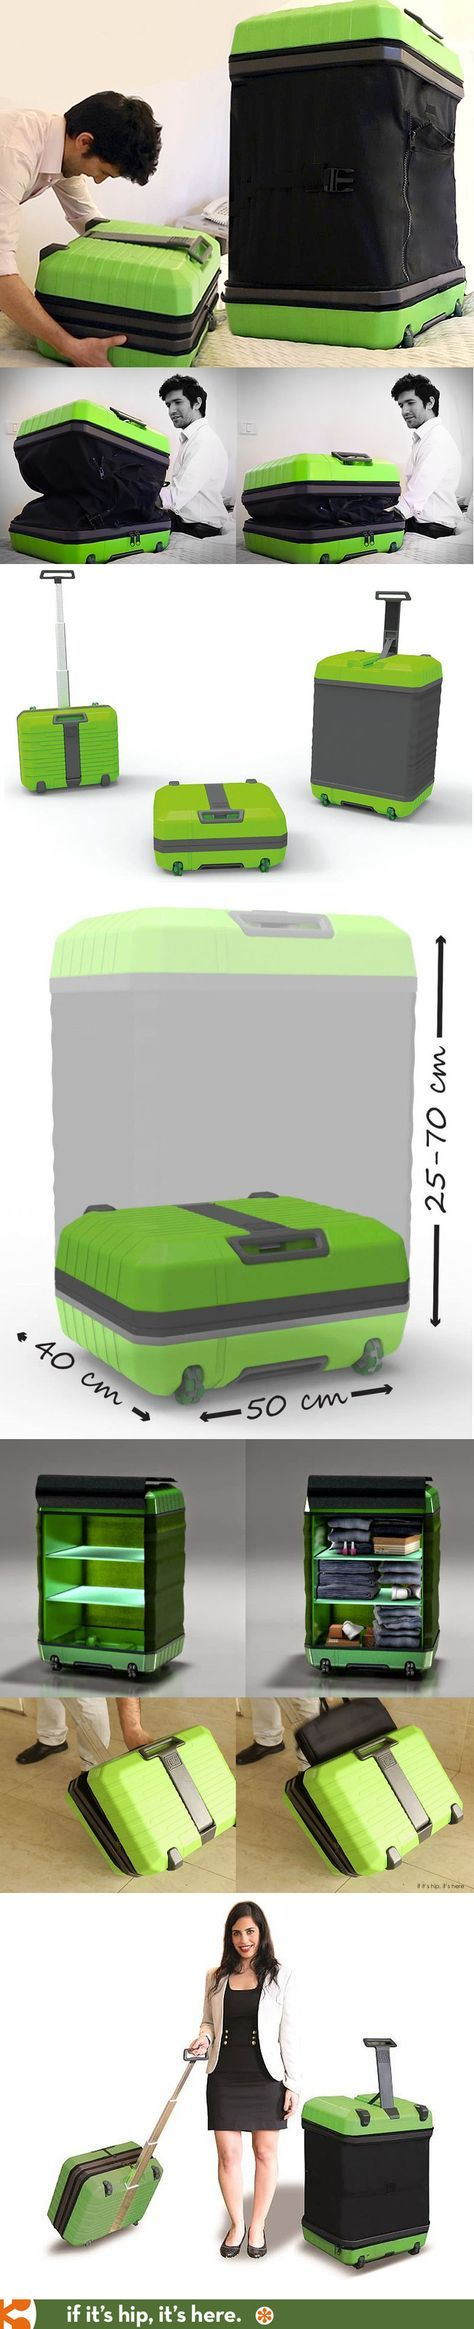 FUGU - revolutionary expanding luggage that goes from a carry-on into a check-in piece of baggage in seconds.   http://www.ifitshipitshere.com/fugu-expandable-luggage/